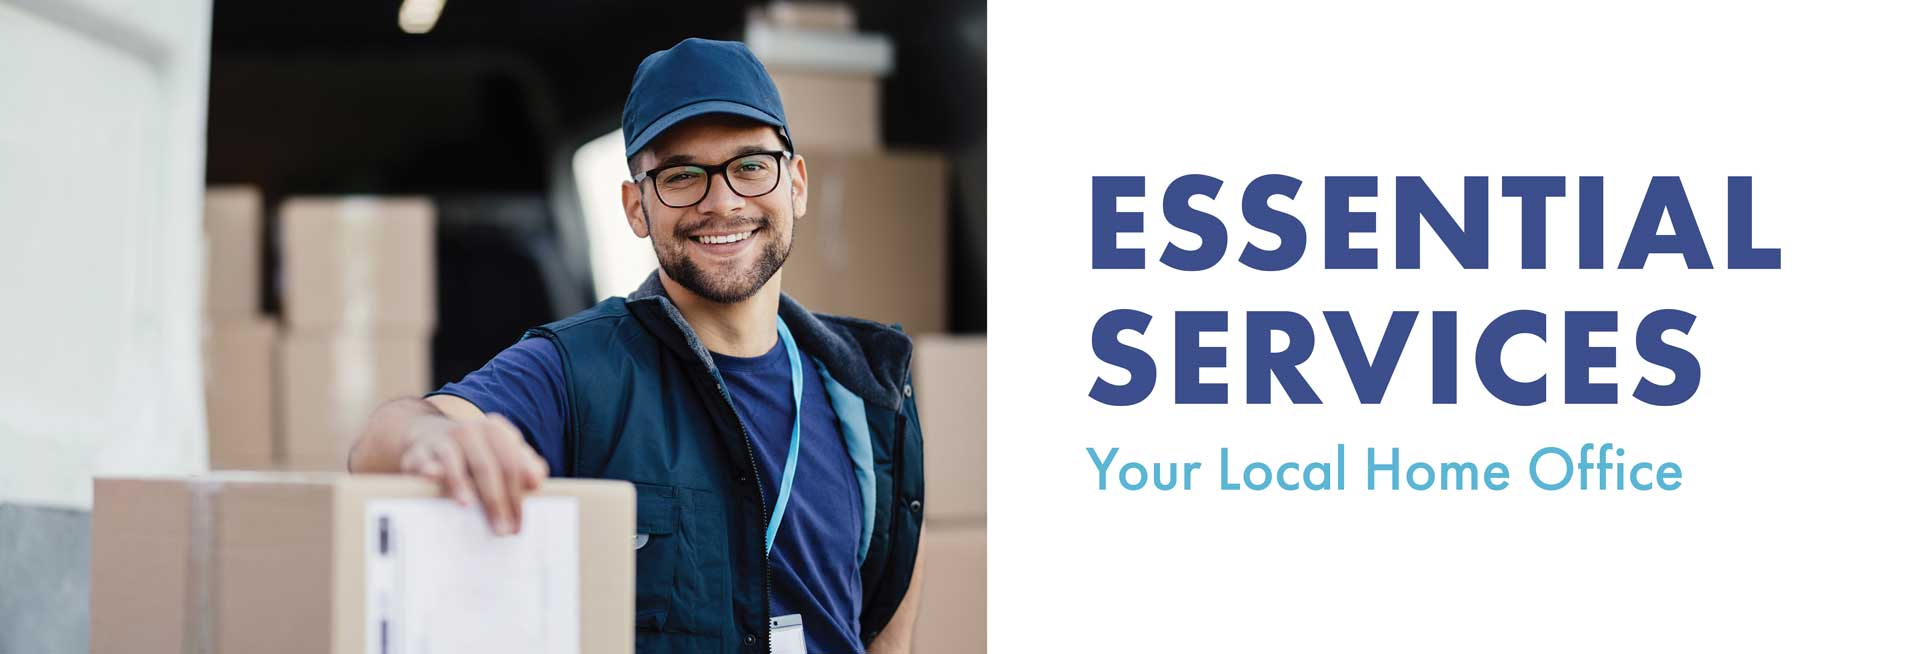 Essential Services - Your Local Home Office